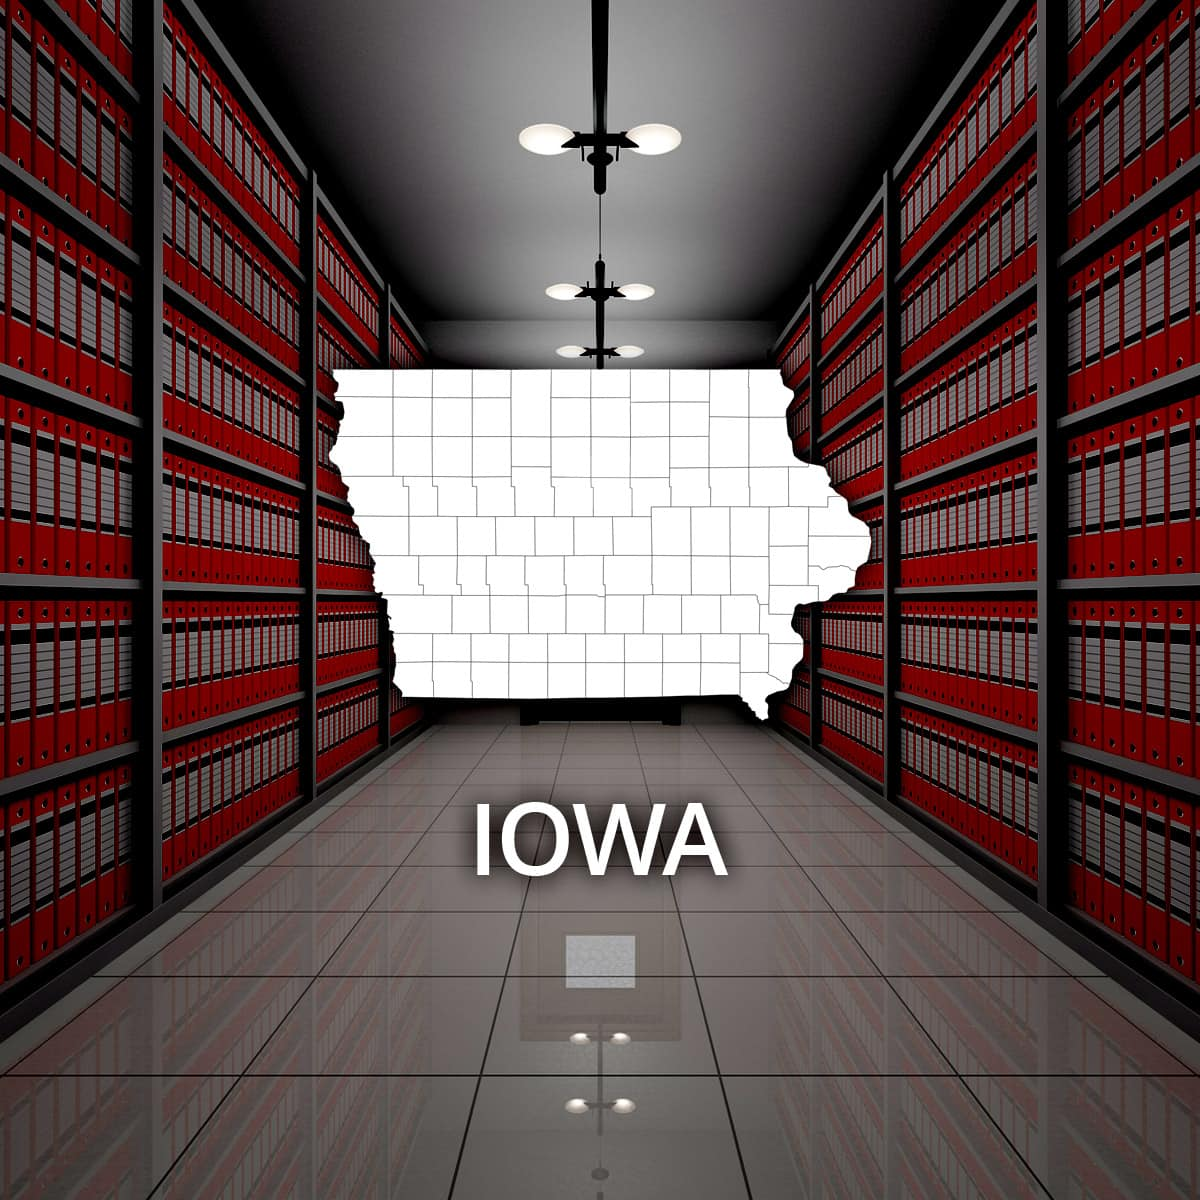 Iowa Public Records